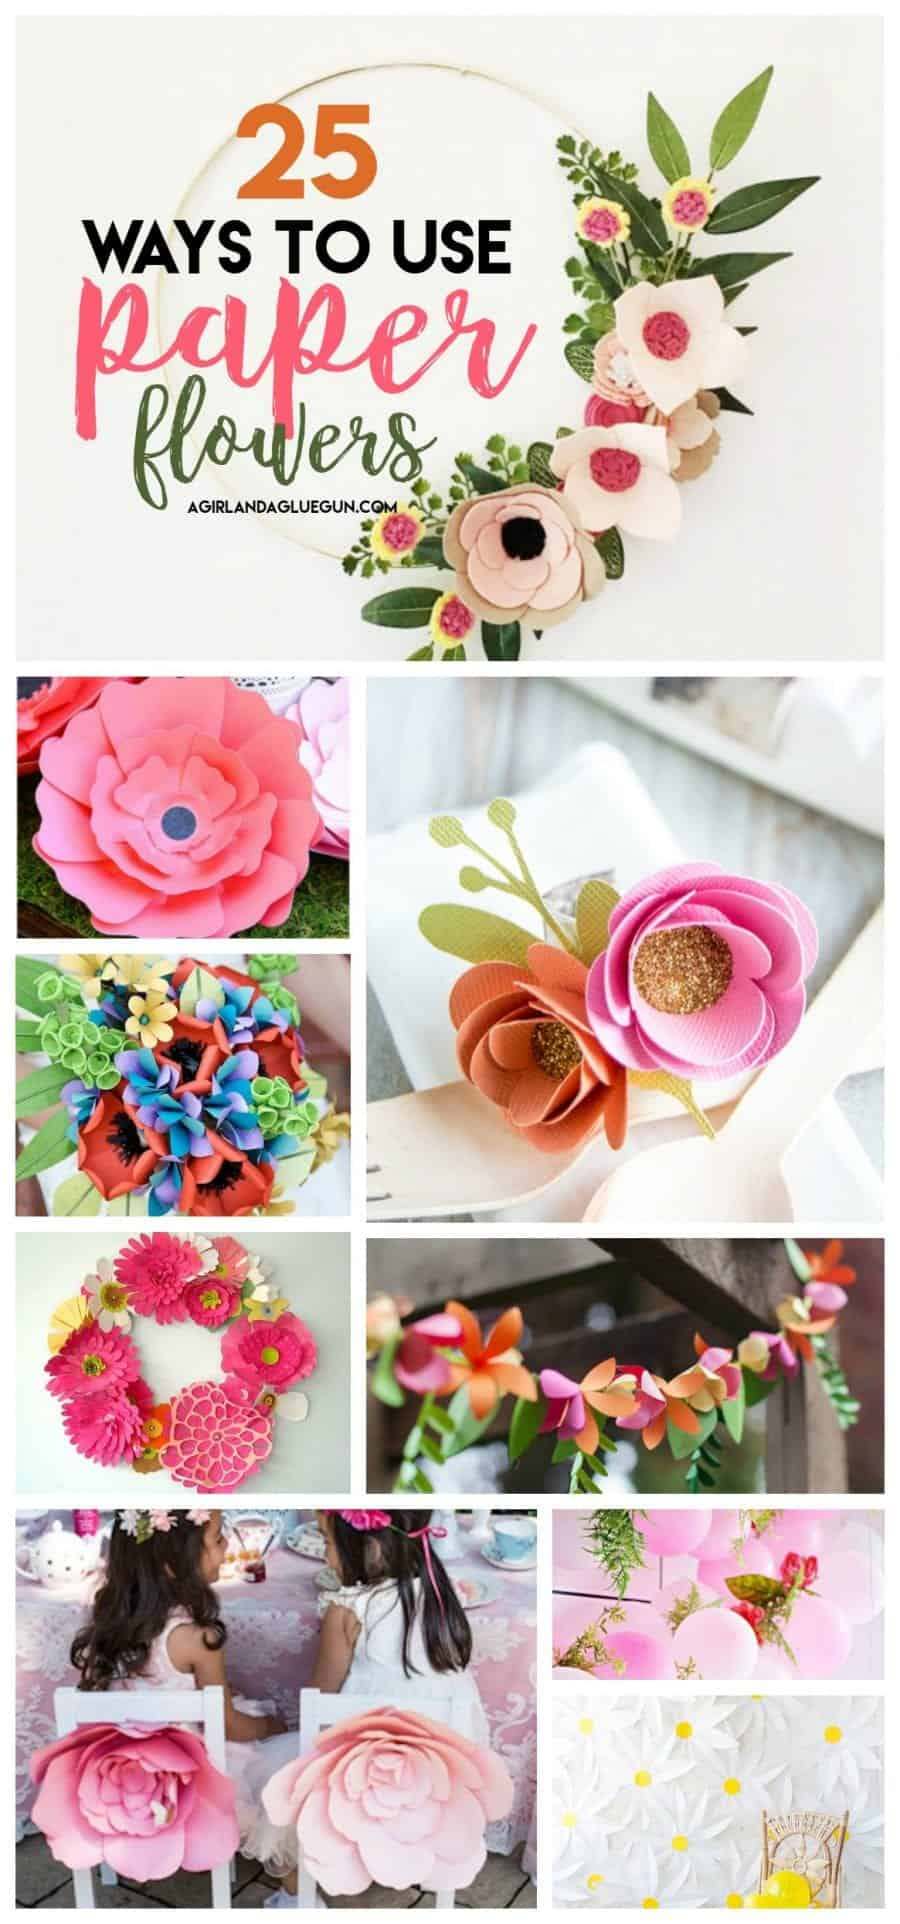 25 ways to use paper flowers! So many cute diys!